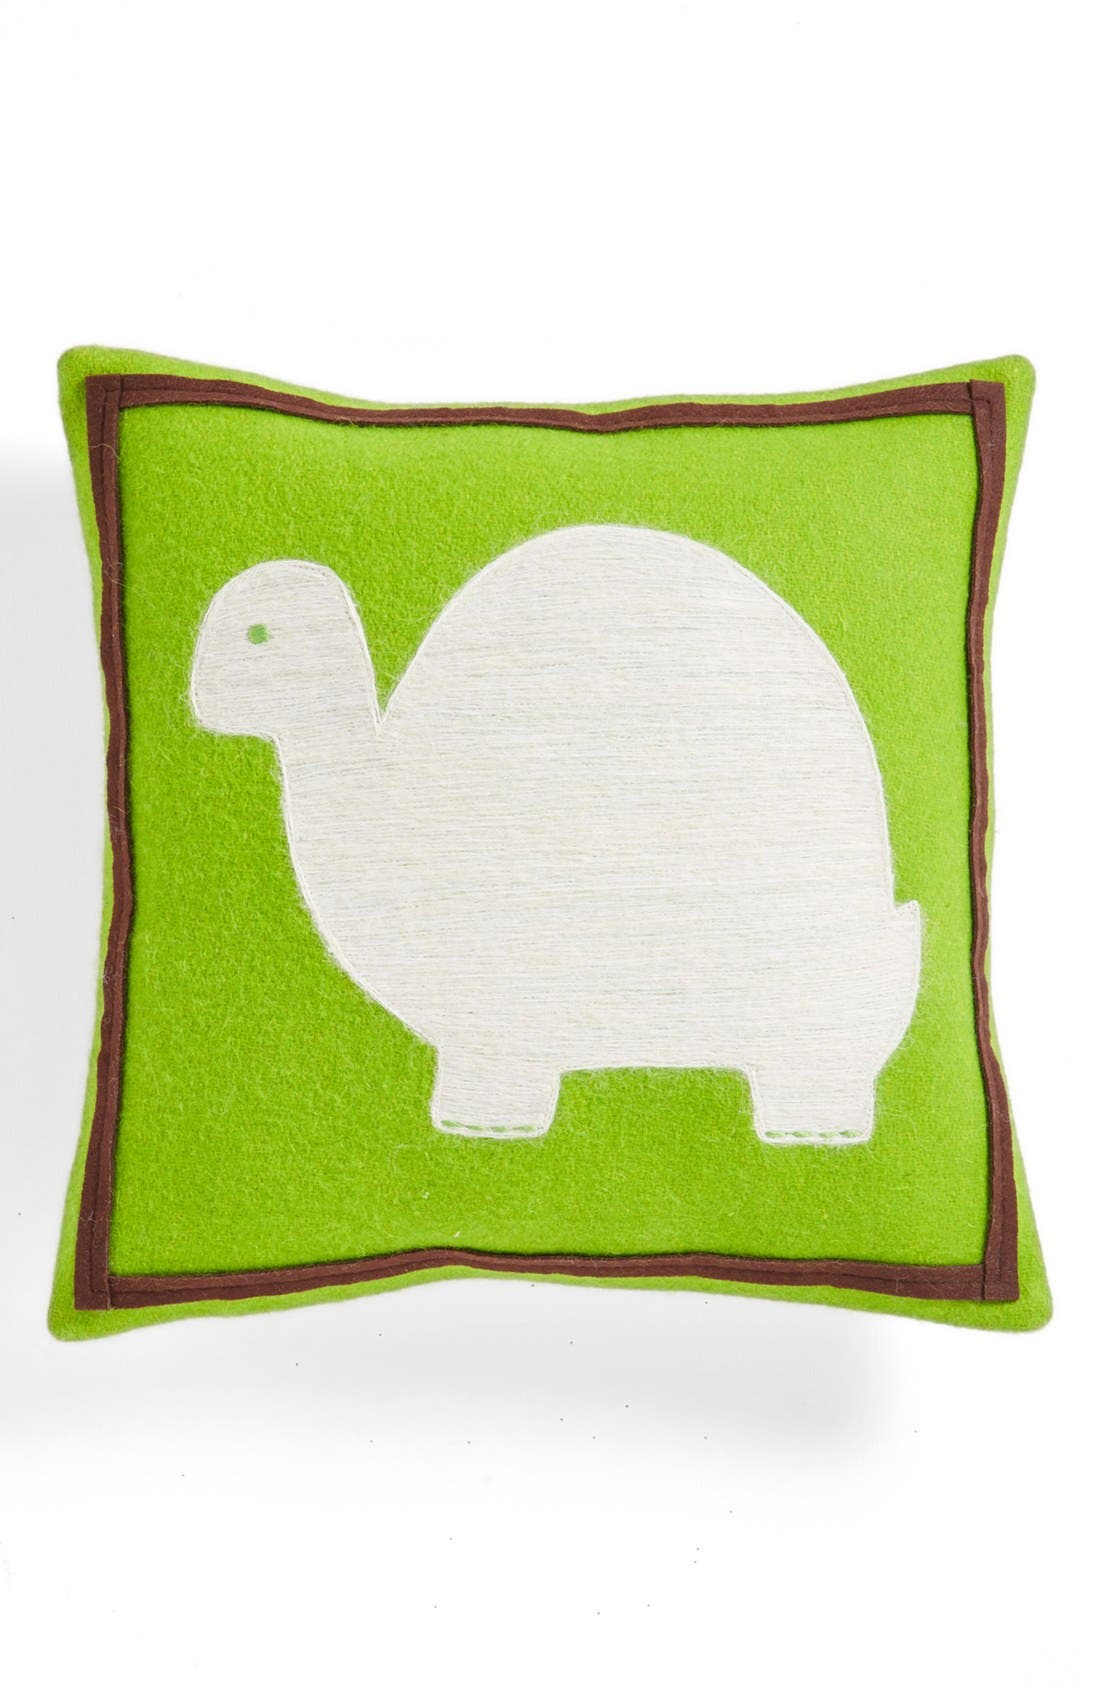 Main Image - Amity Home 'Turtle' Decorative Pillow